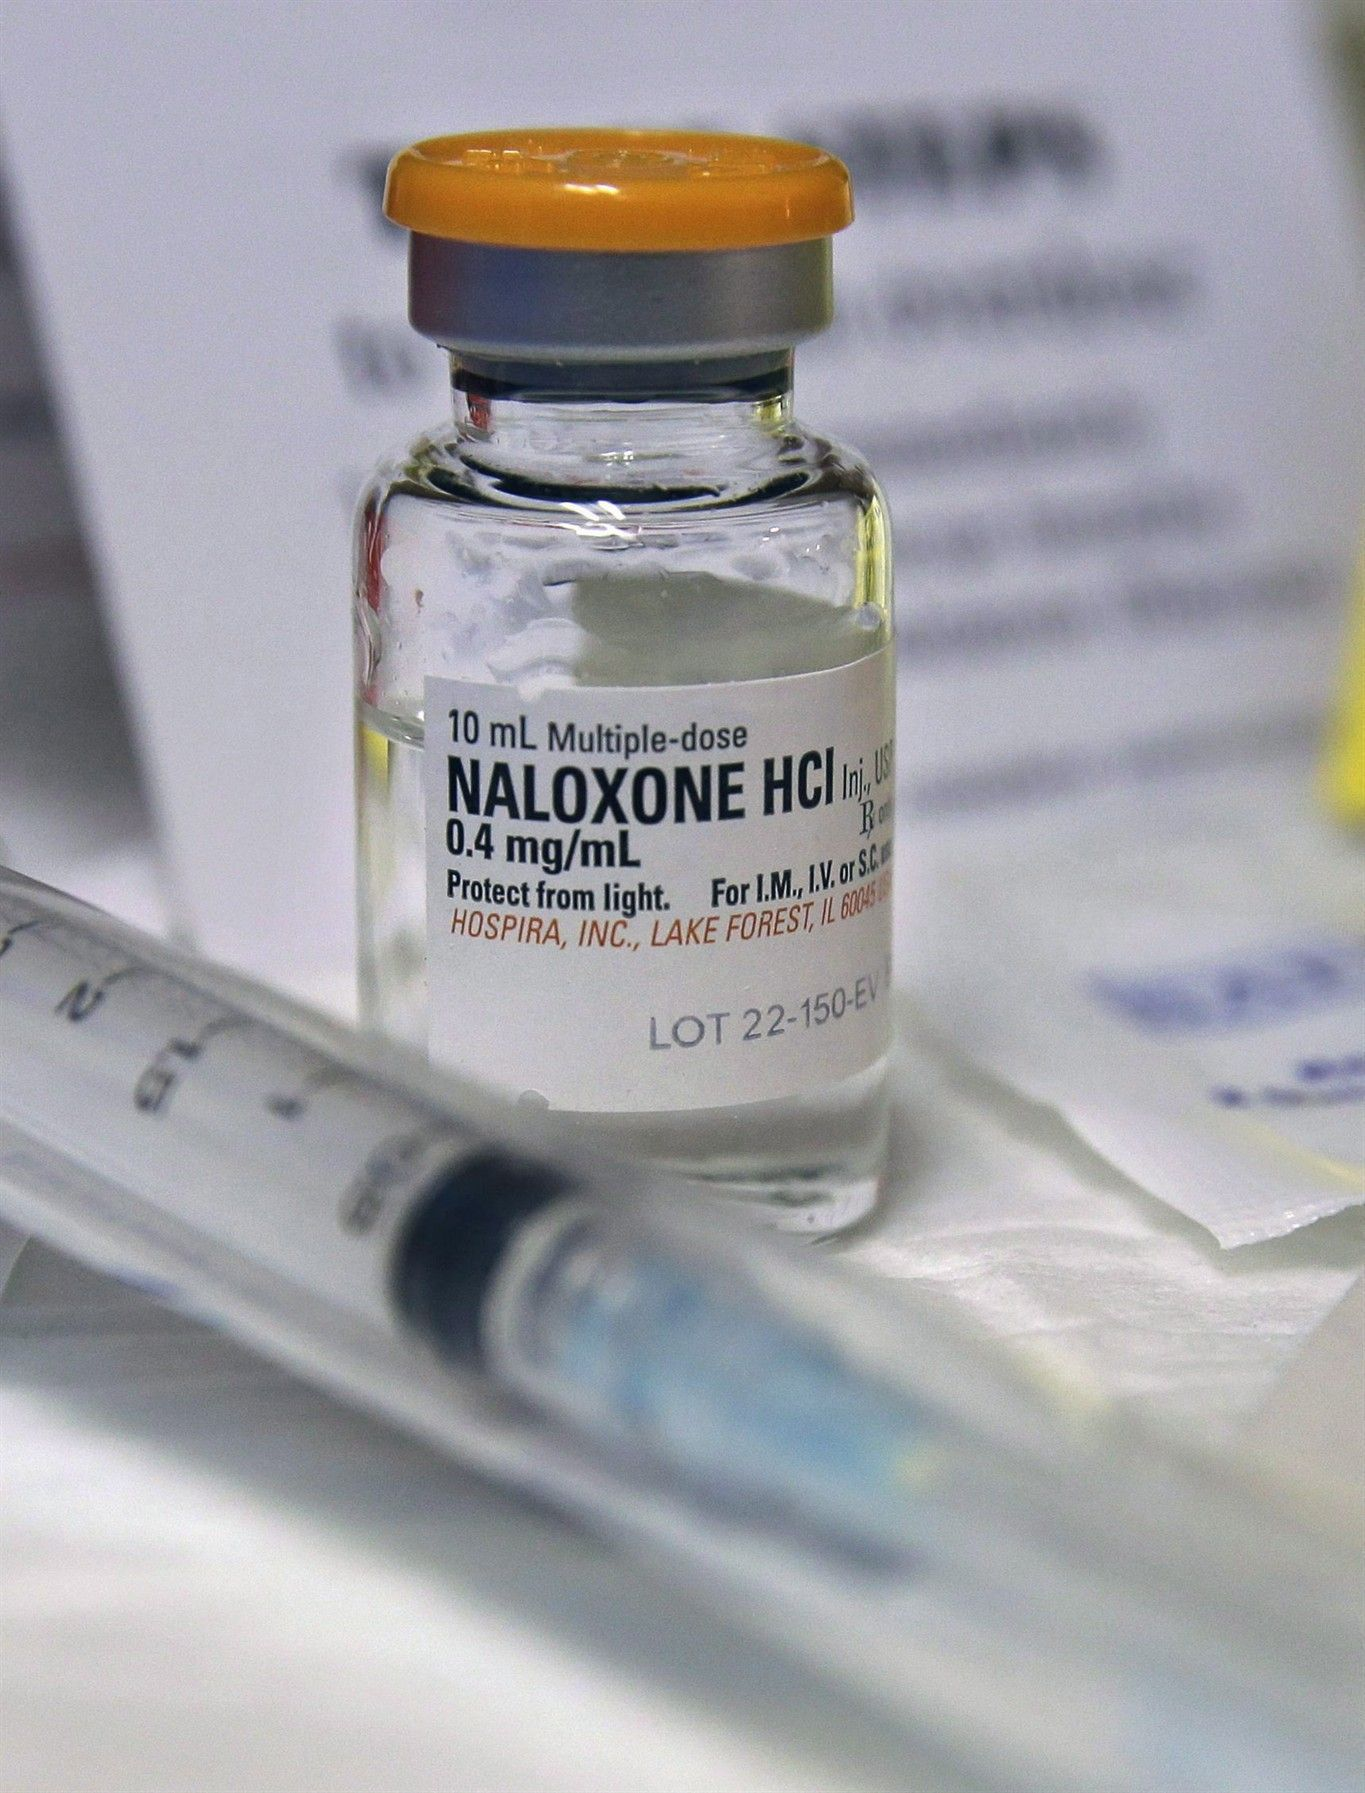 #Toronto firefighters will soon be equipped with naloxone kits - CityNews: CityNews Toronto firefighters will soon be equipped with…